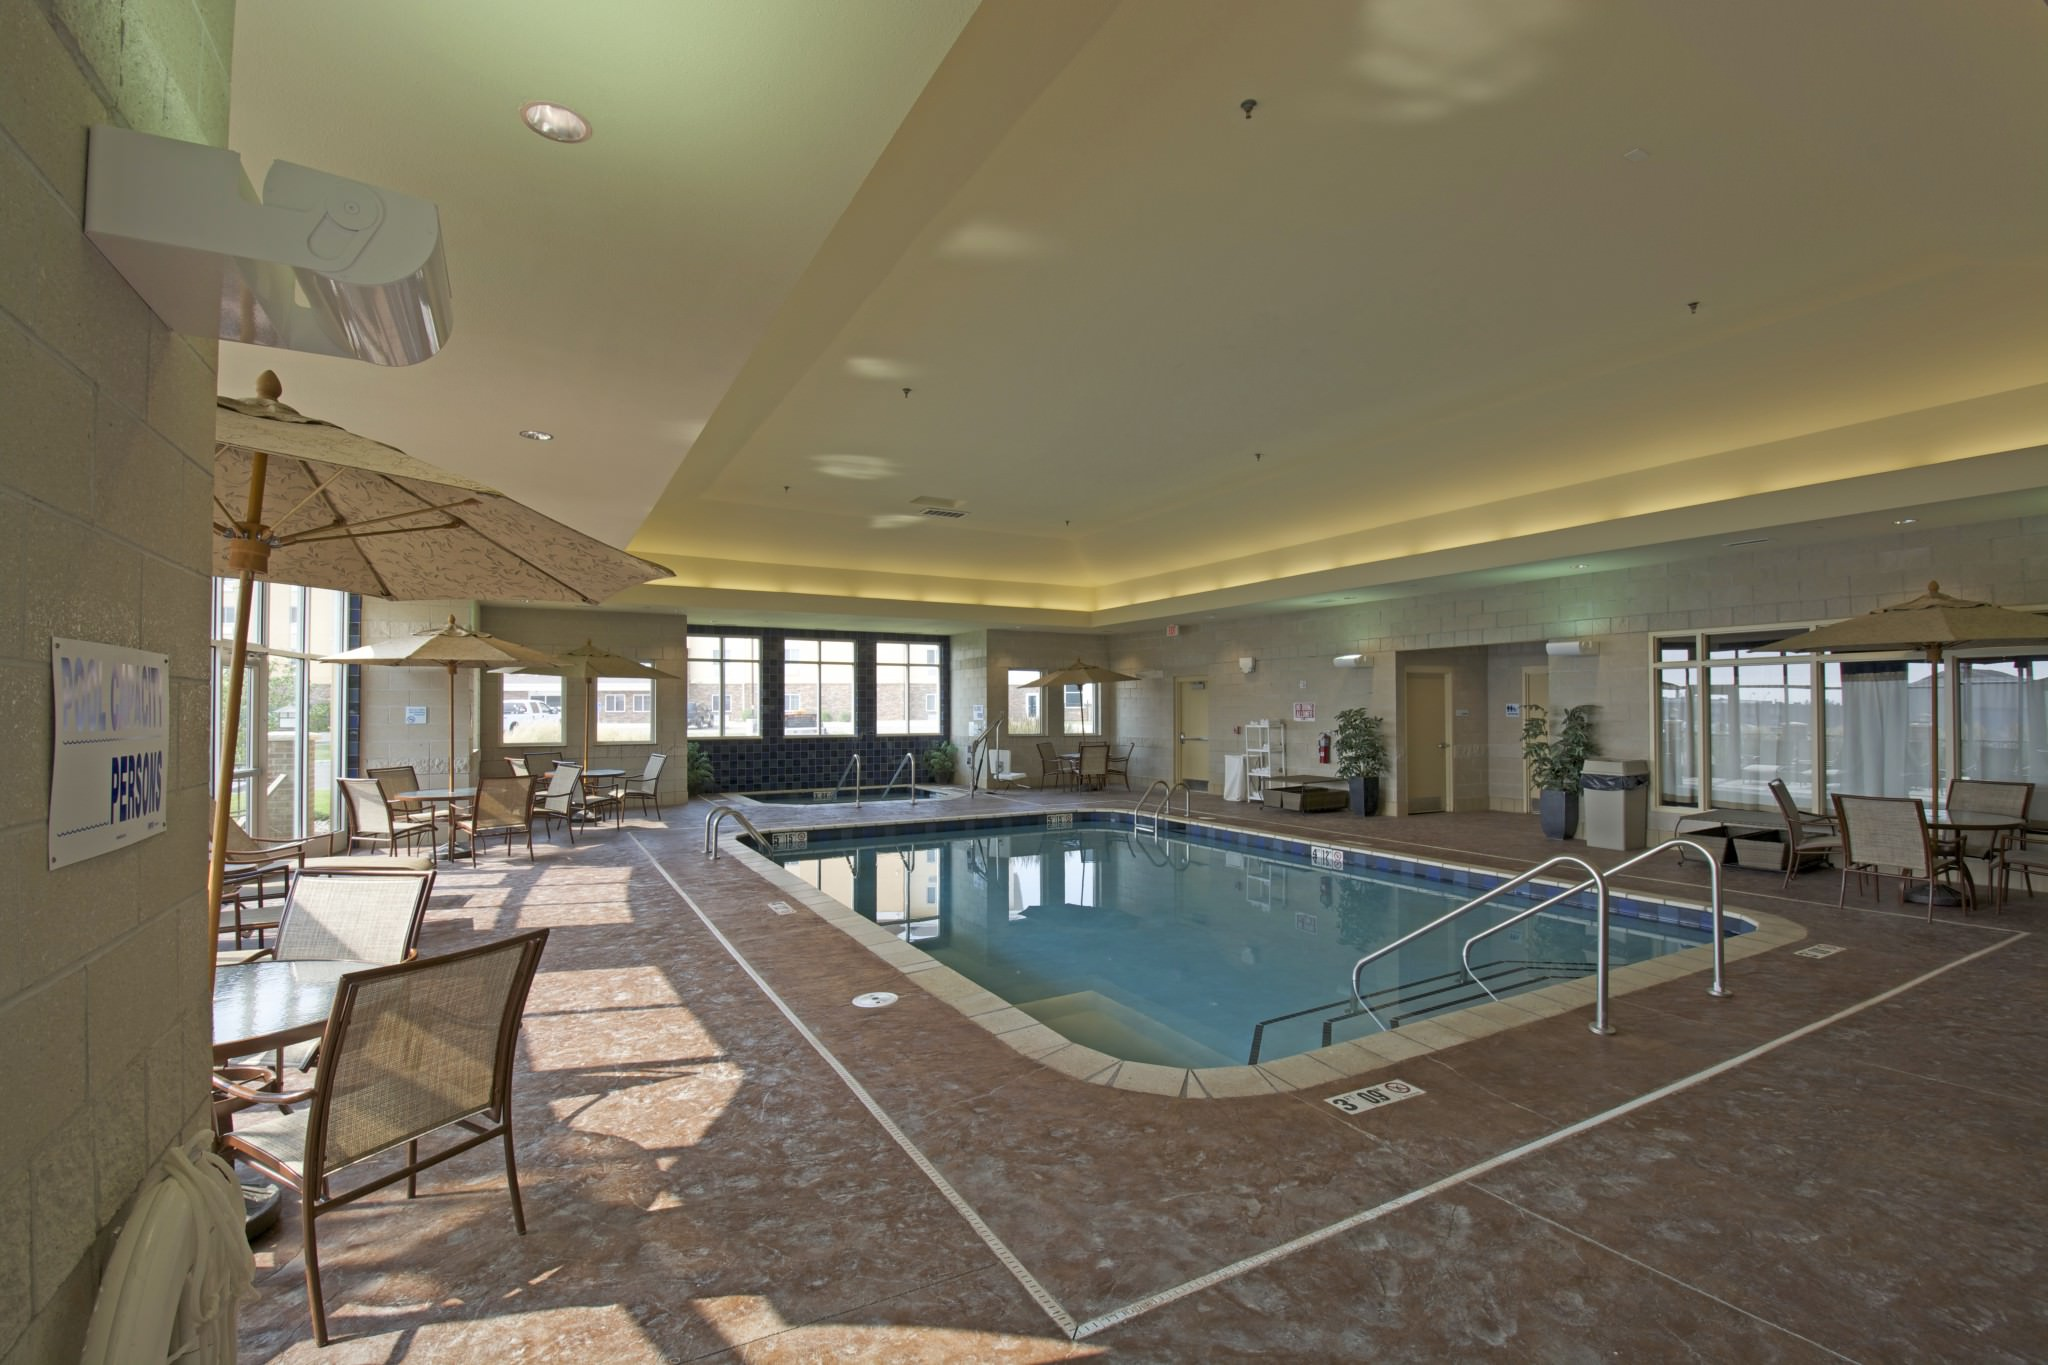 Holiday Inn pool room